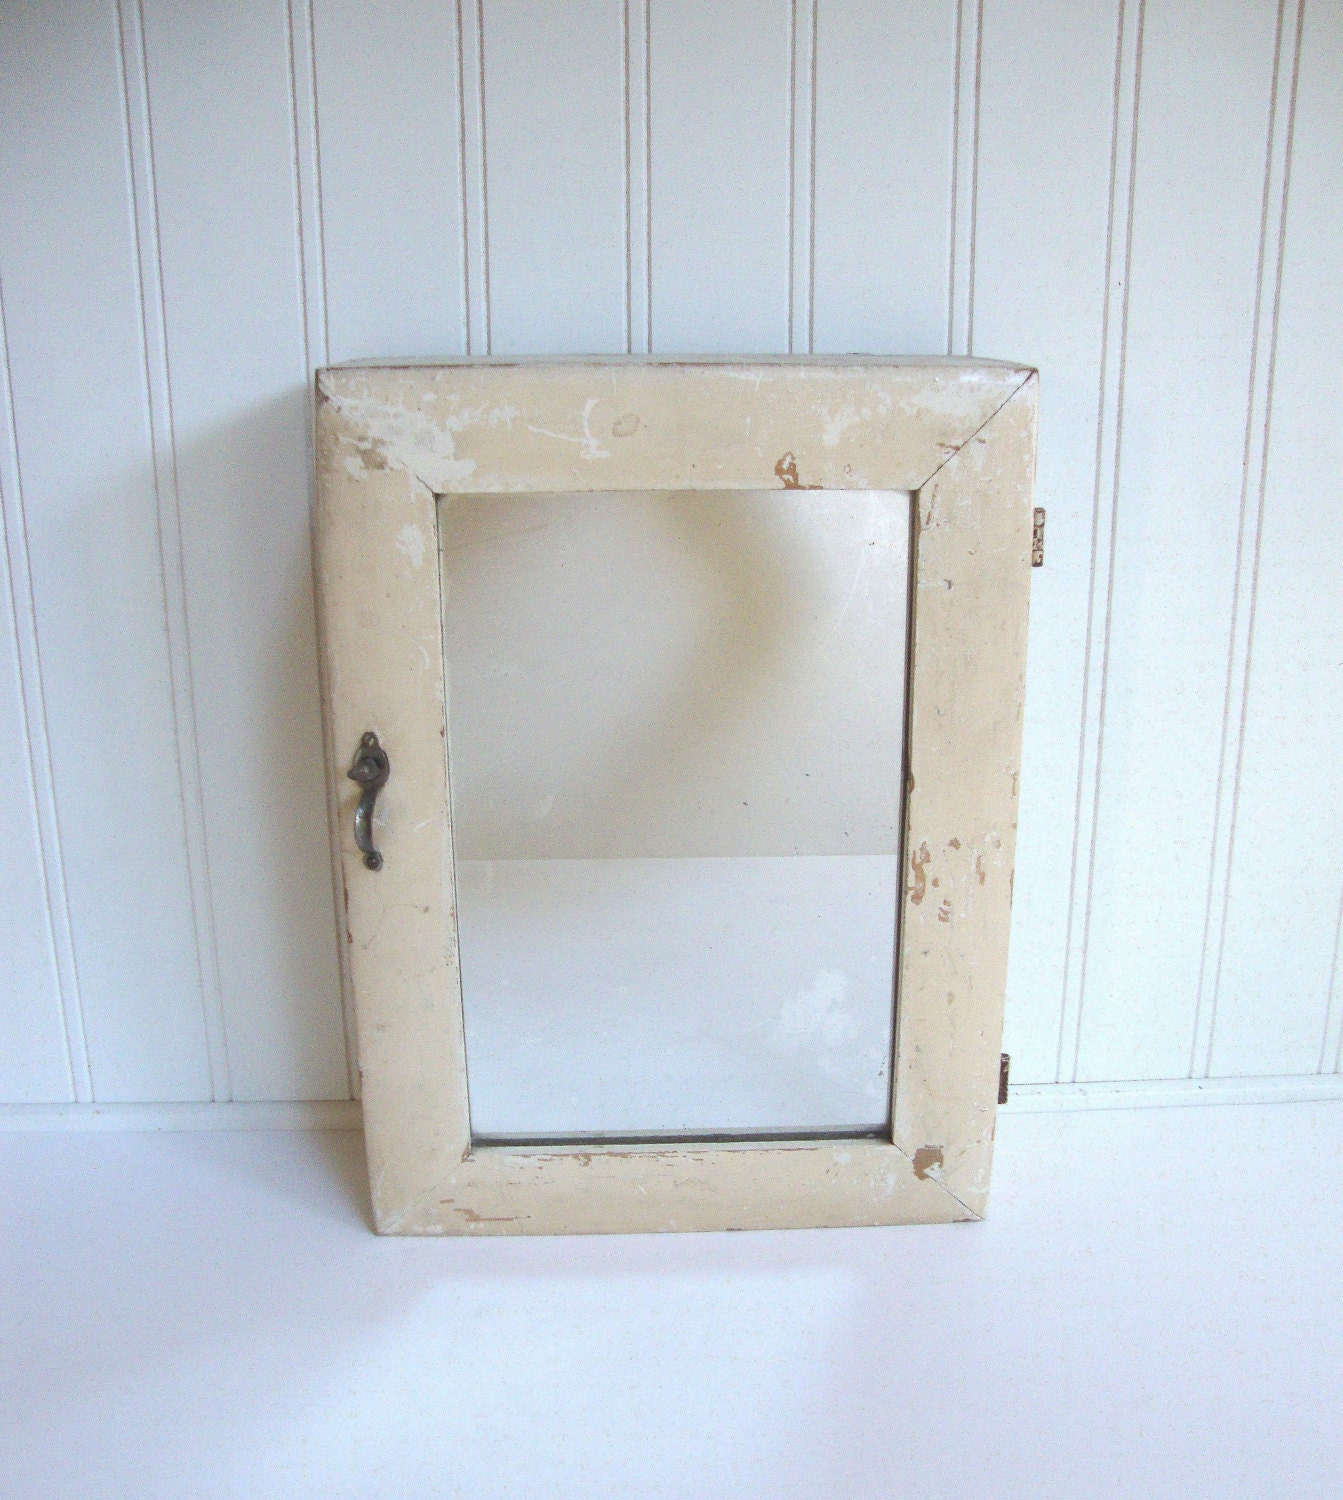 Vintage Medicine Cabinet Mirror Bathroom Wood White